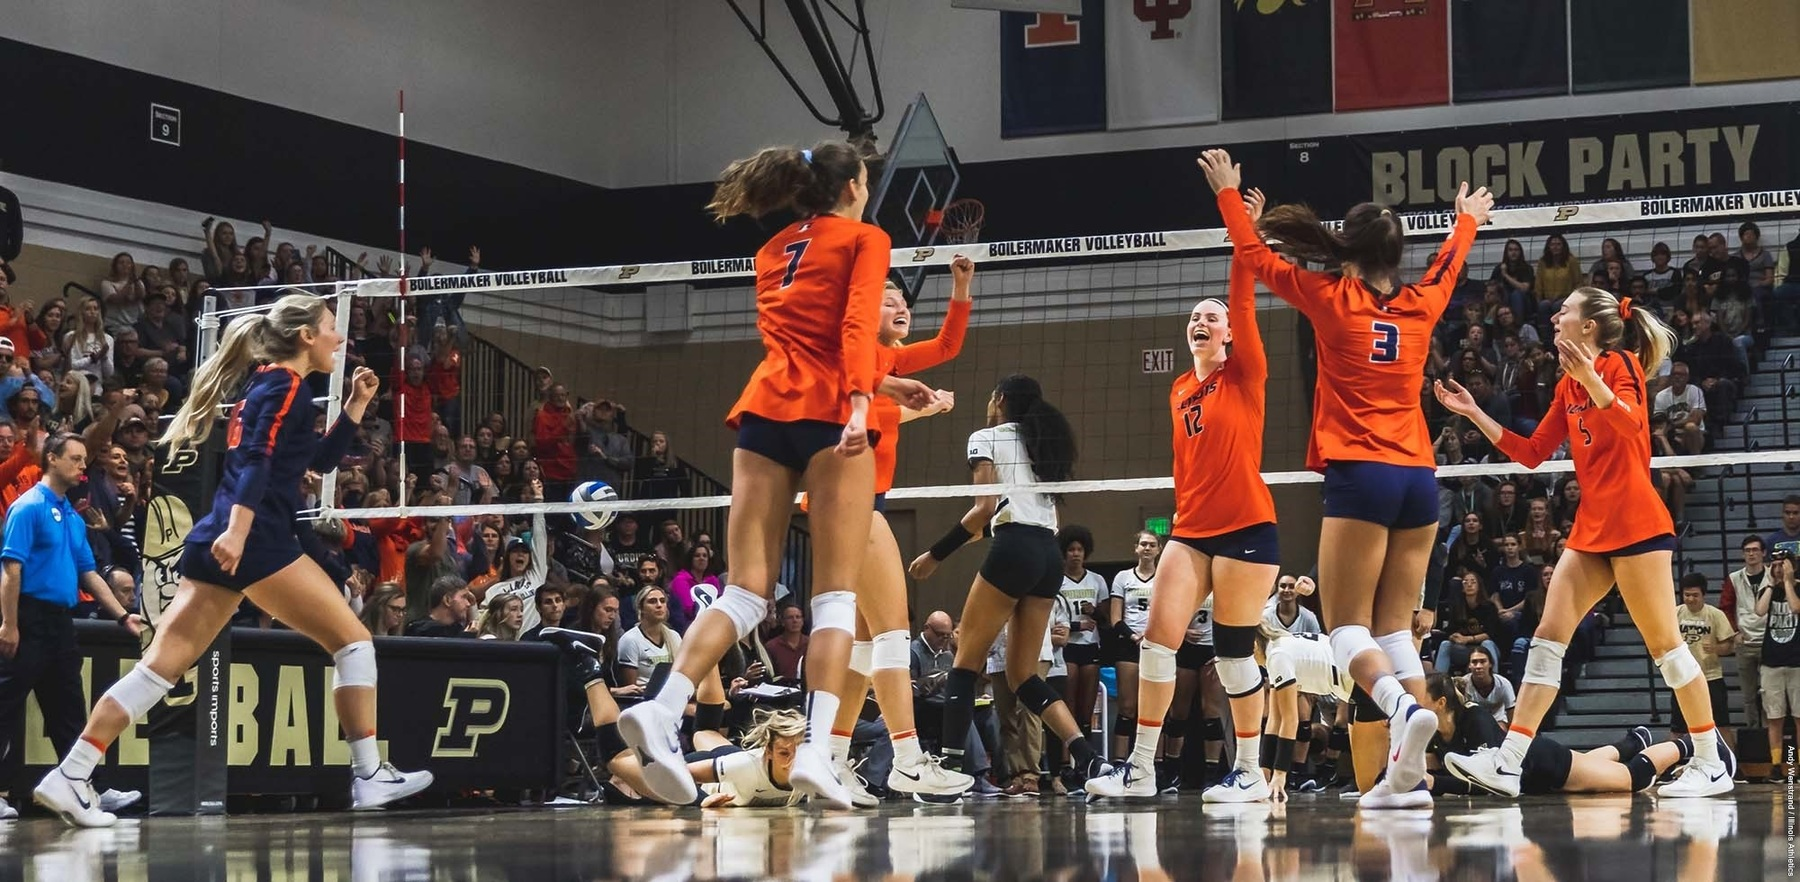 volleyball players celebrate on the court at Purdue